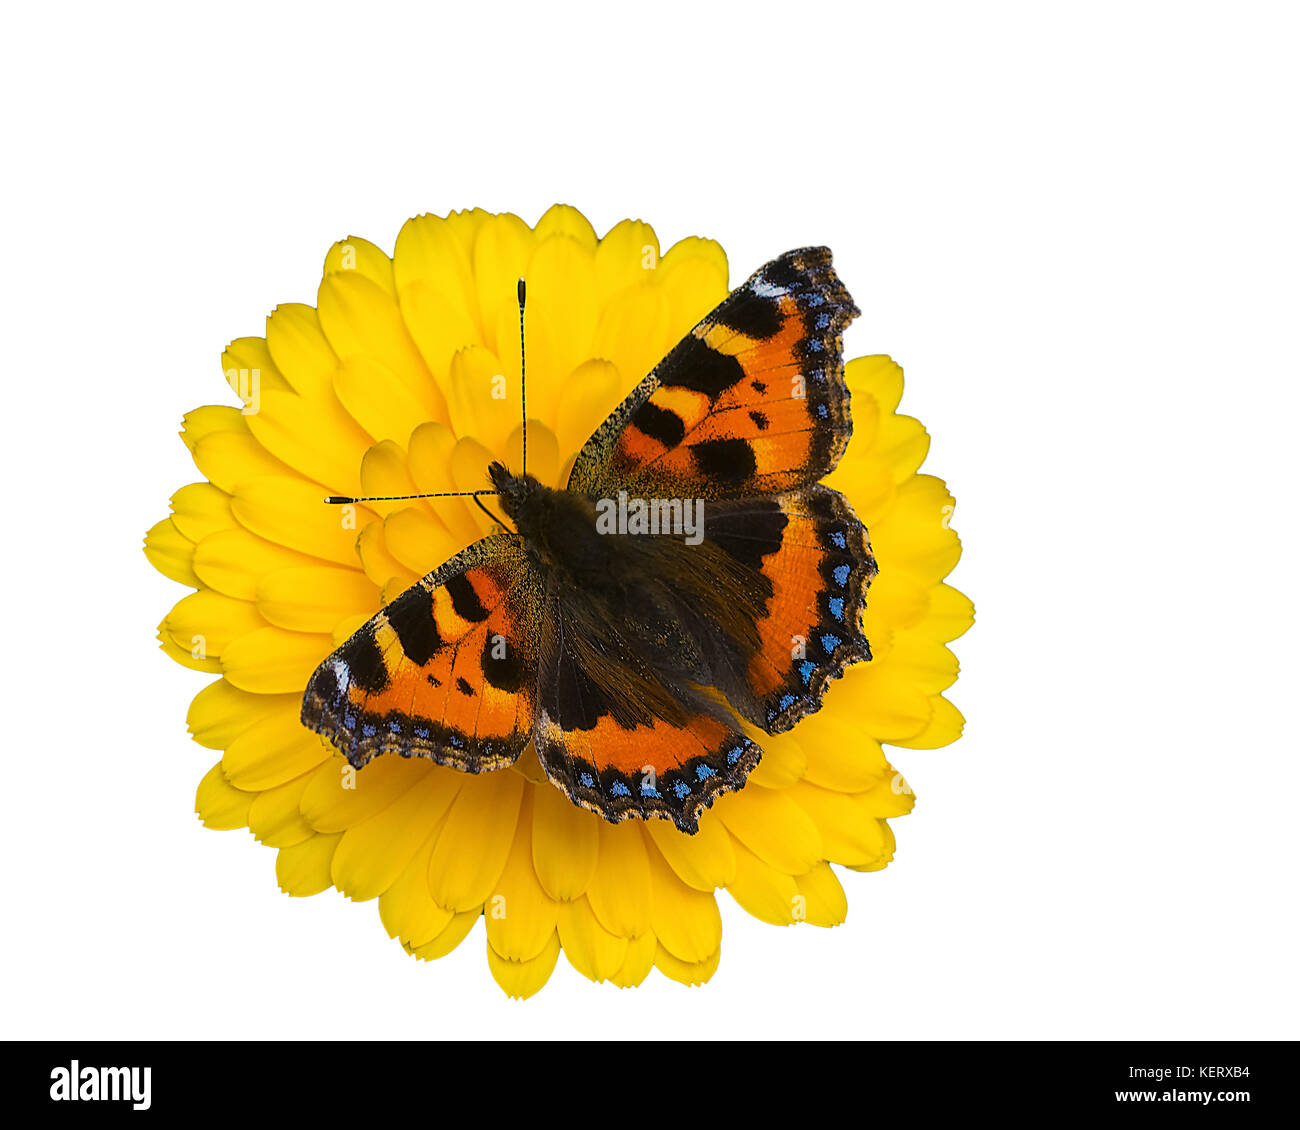 cut out image of a small tortoiseshell butterfly, Aglais urticae, on a calendula flower - Stock Image